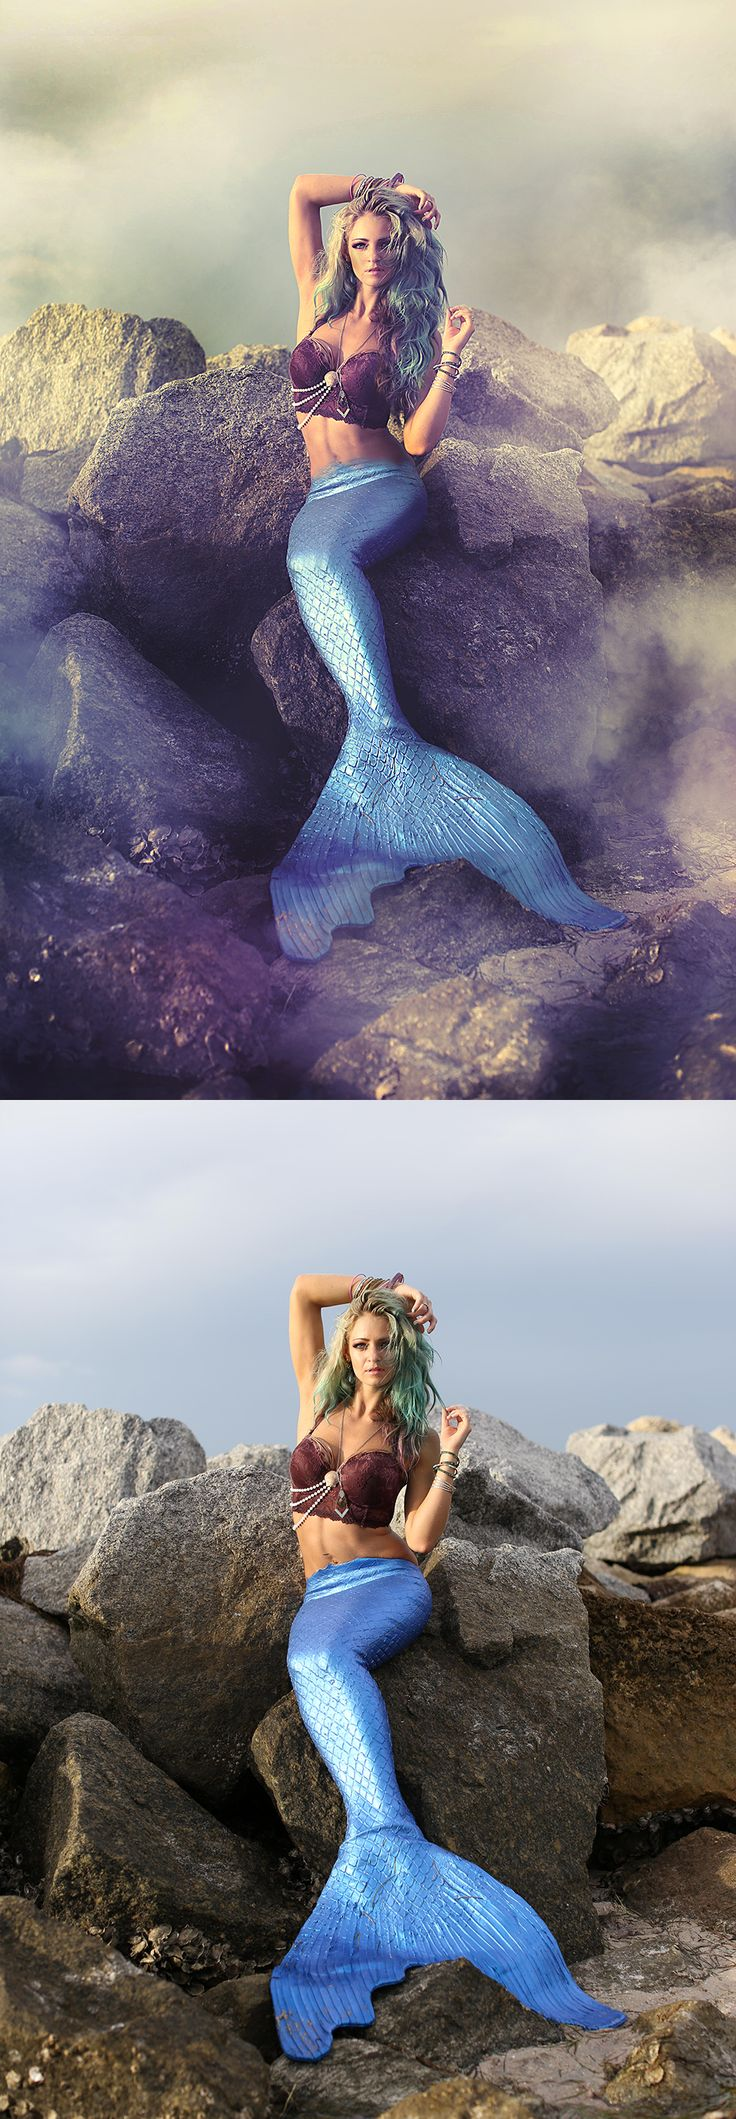 Photoshop retouching for a mermaid photo-shoot.